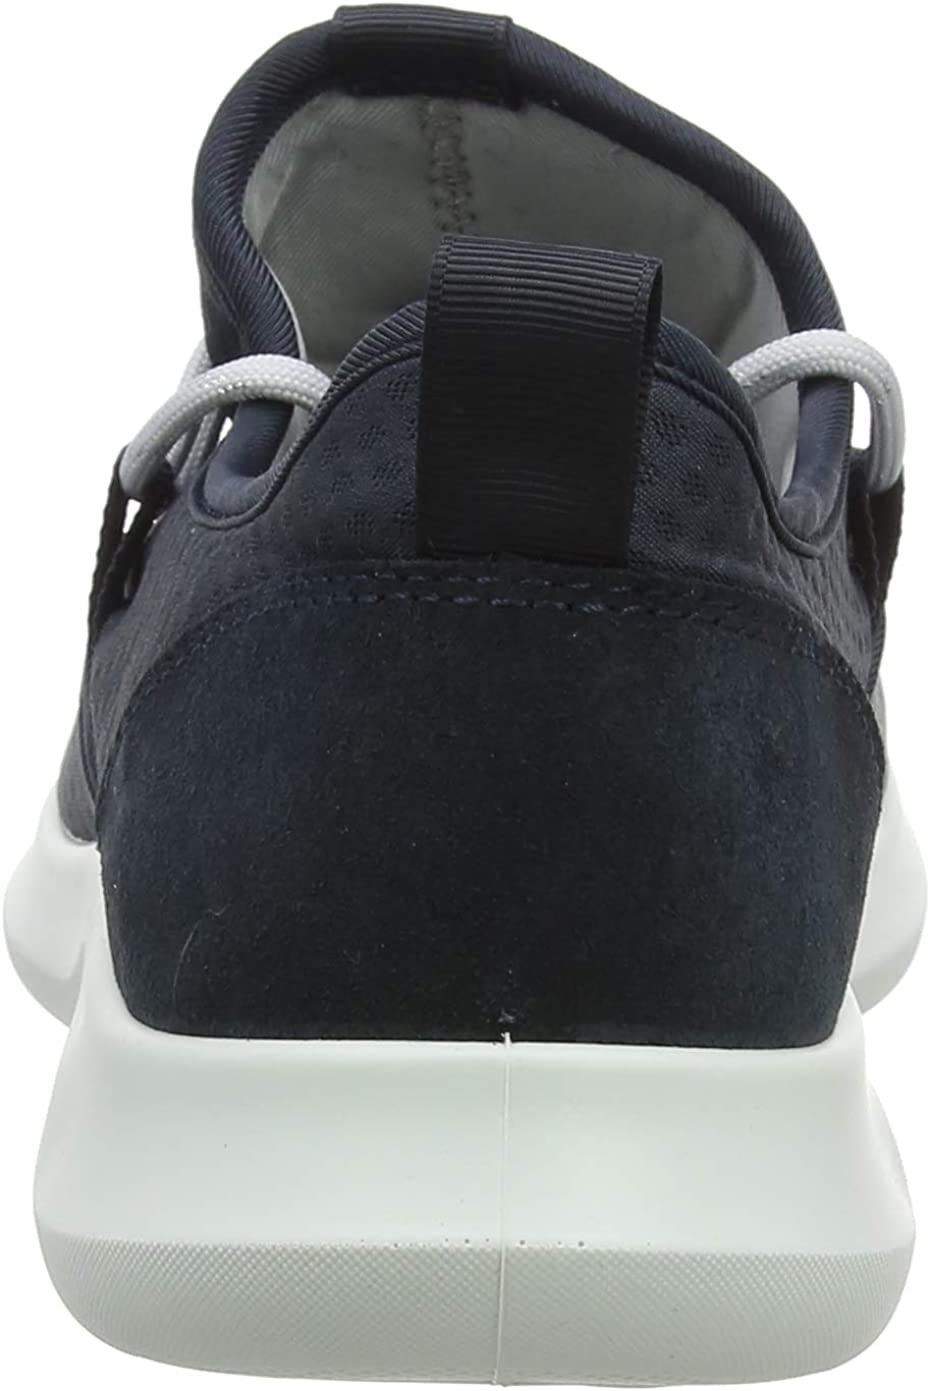 Hotter Womens Glide Trainers